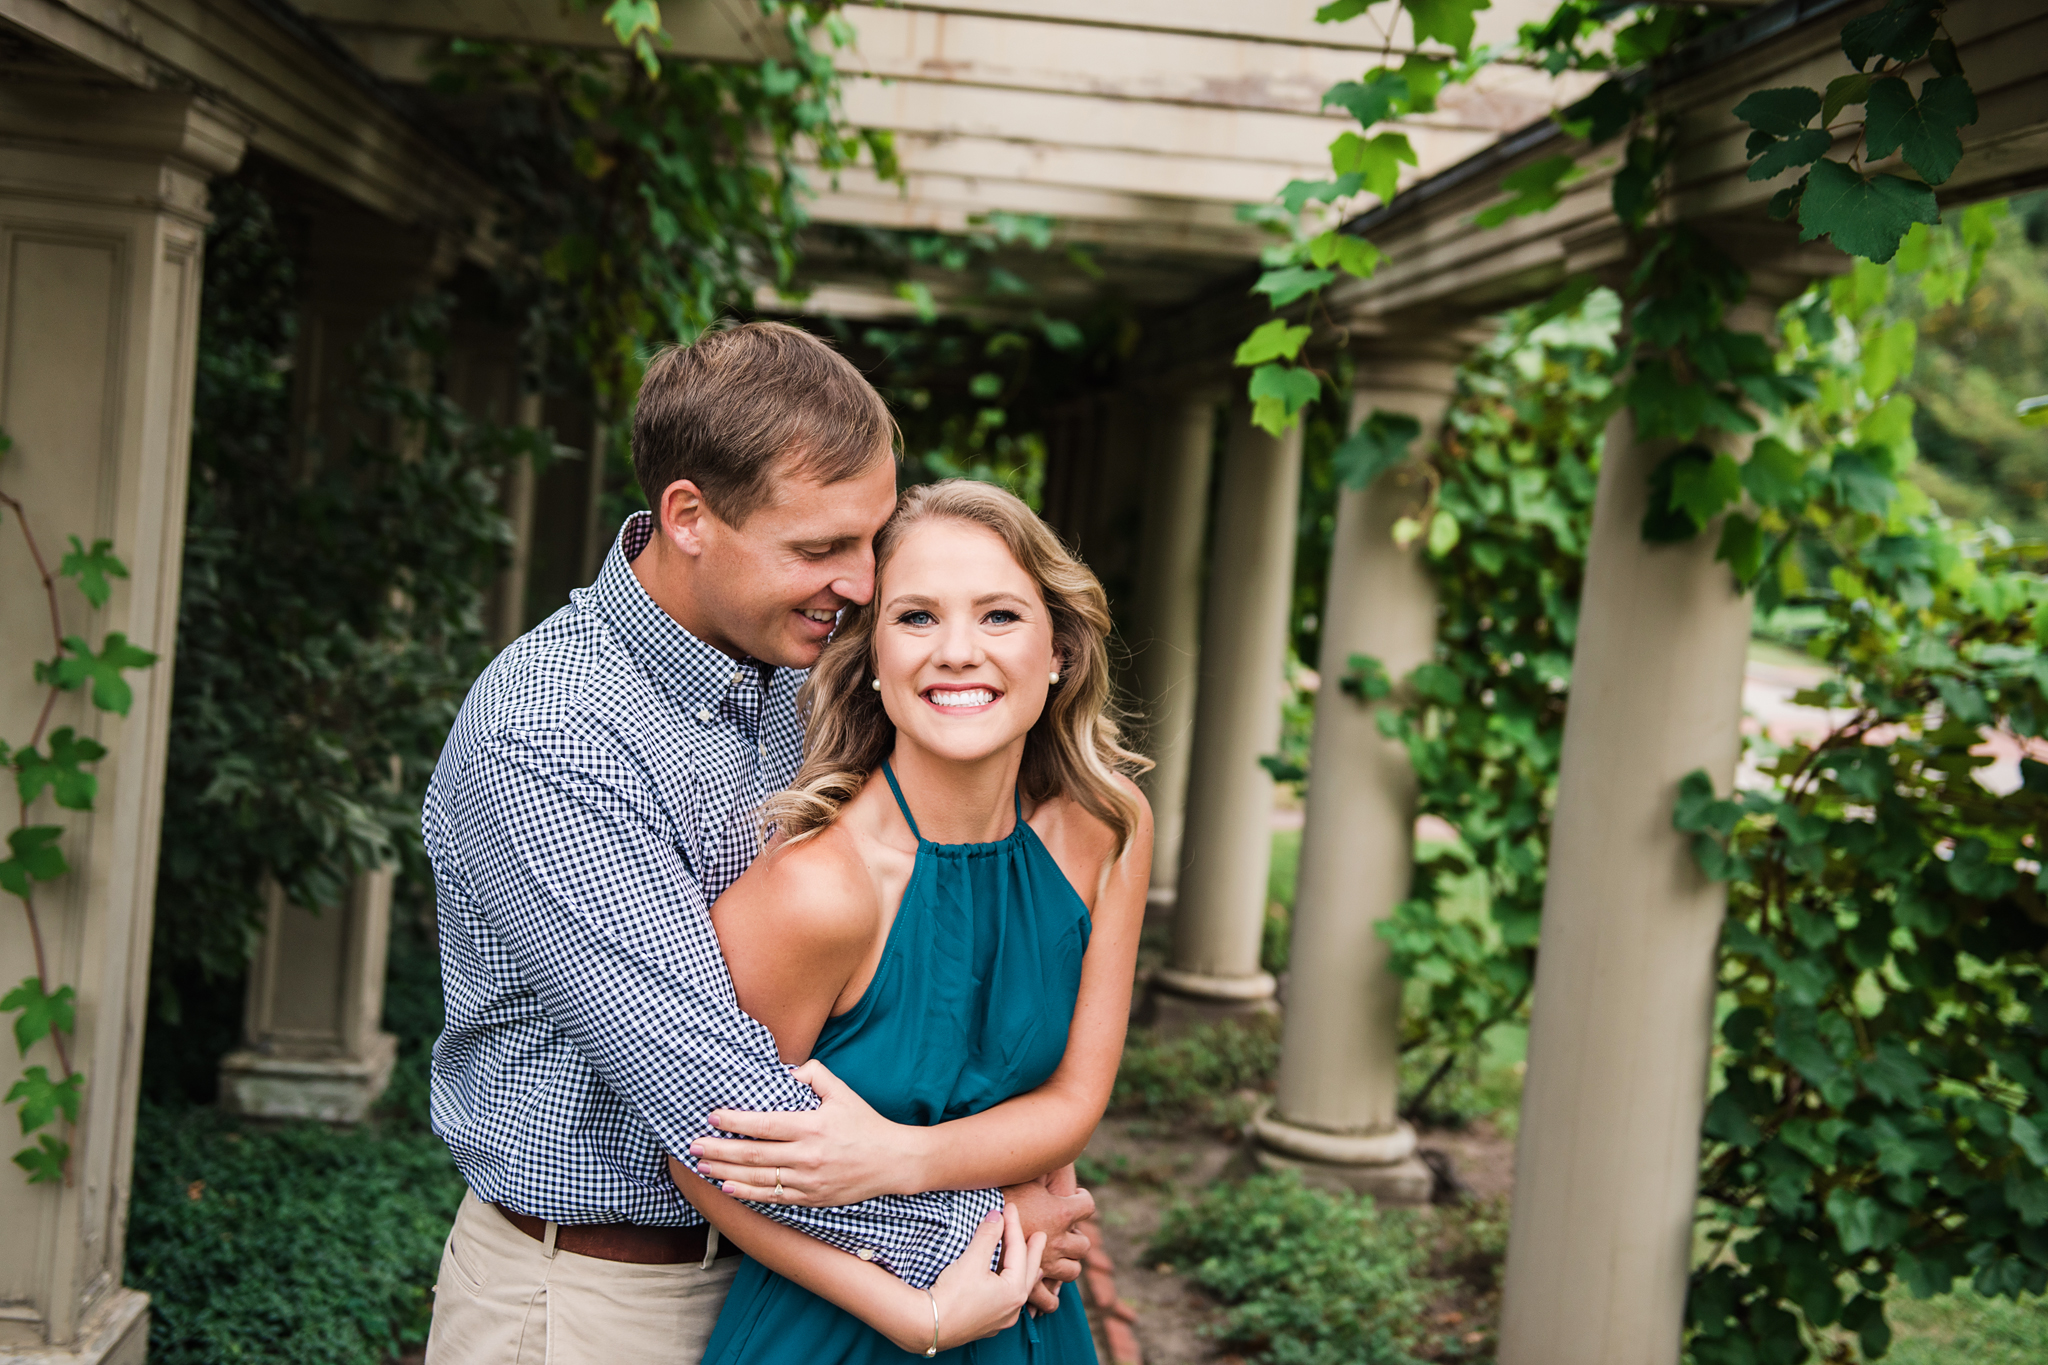 George_Eastman_House_Rochester_Yacht_Club_Rochester_Engagement_Session_JILL_STUDIO_Rochester_NY_Photographer_DSC_8125.jpg